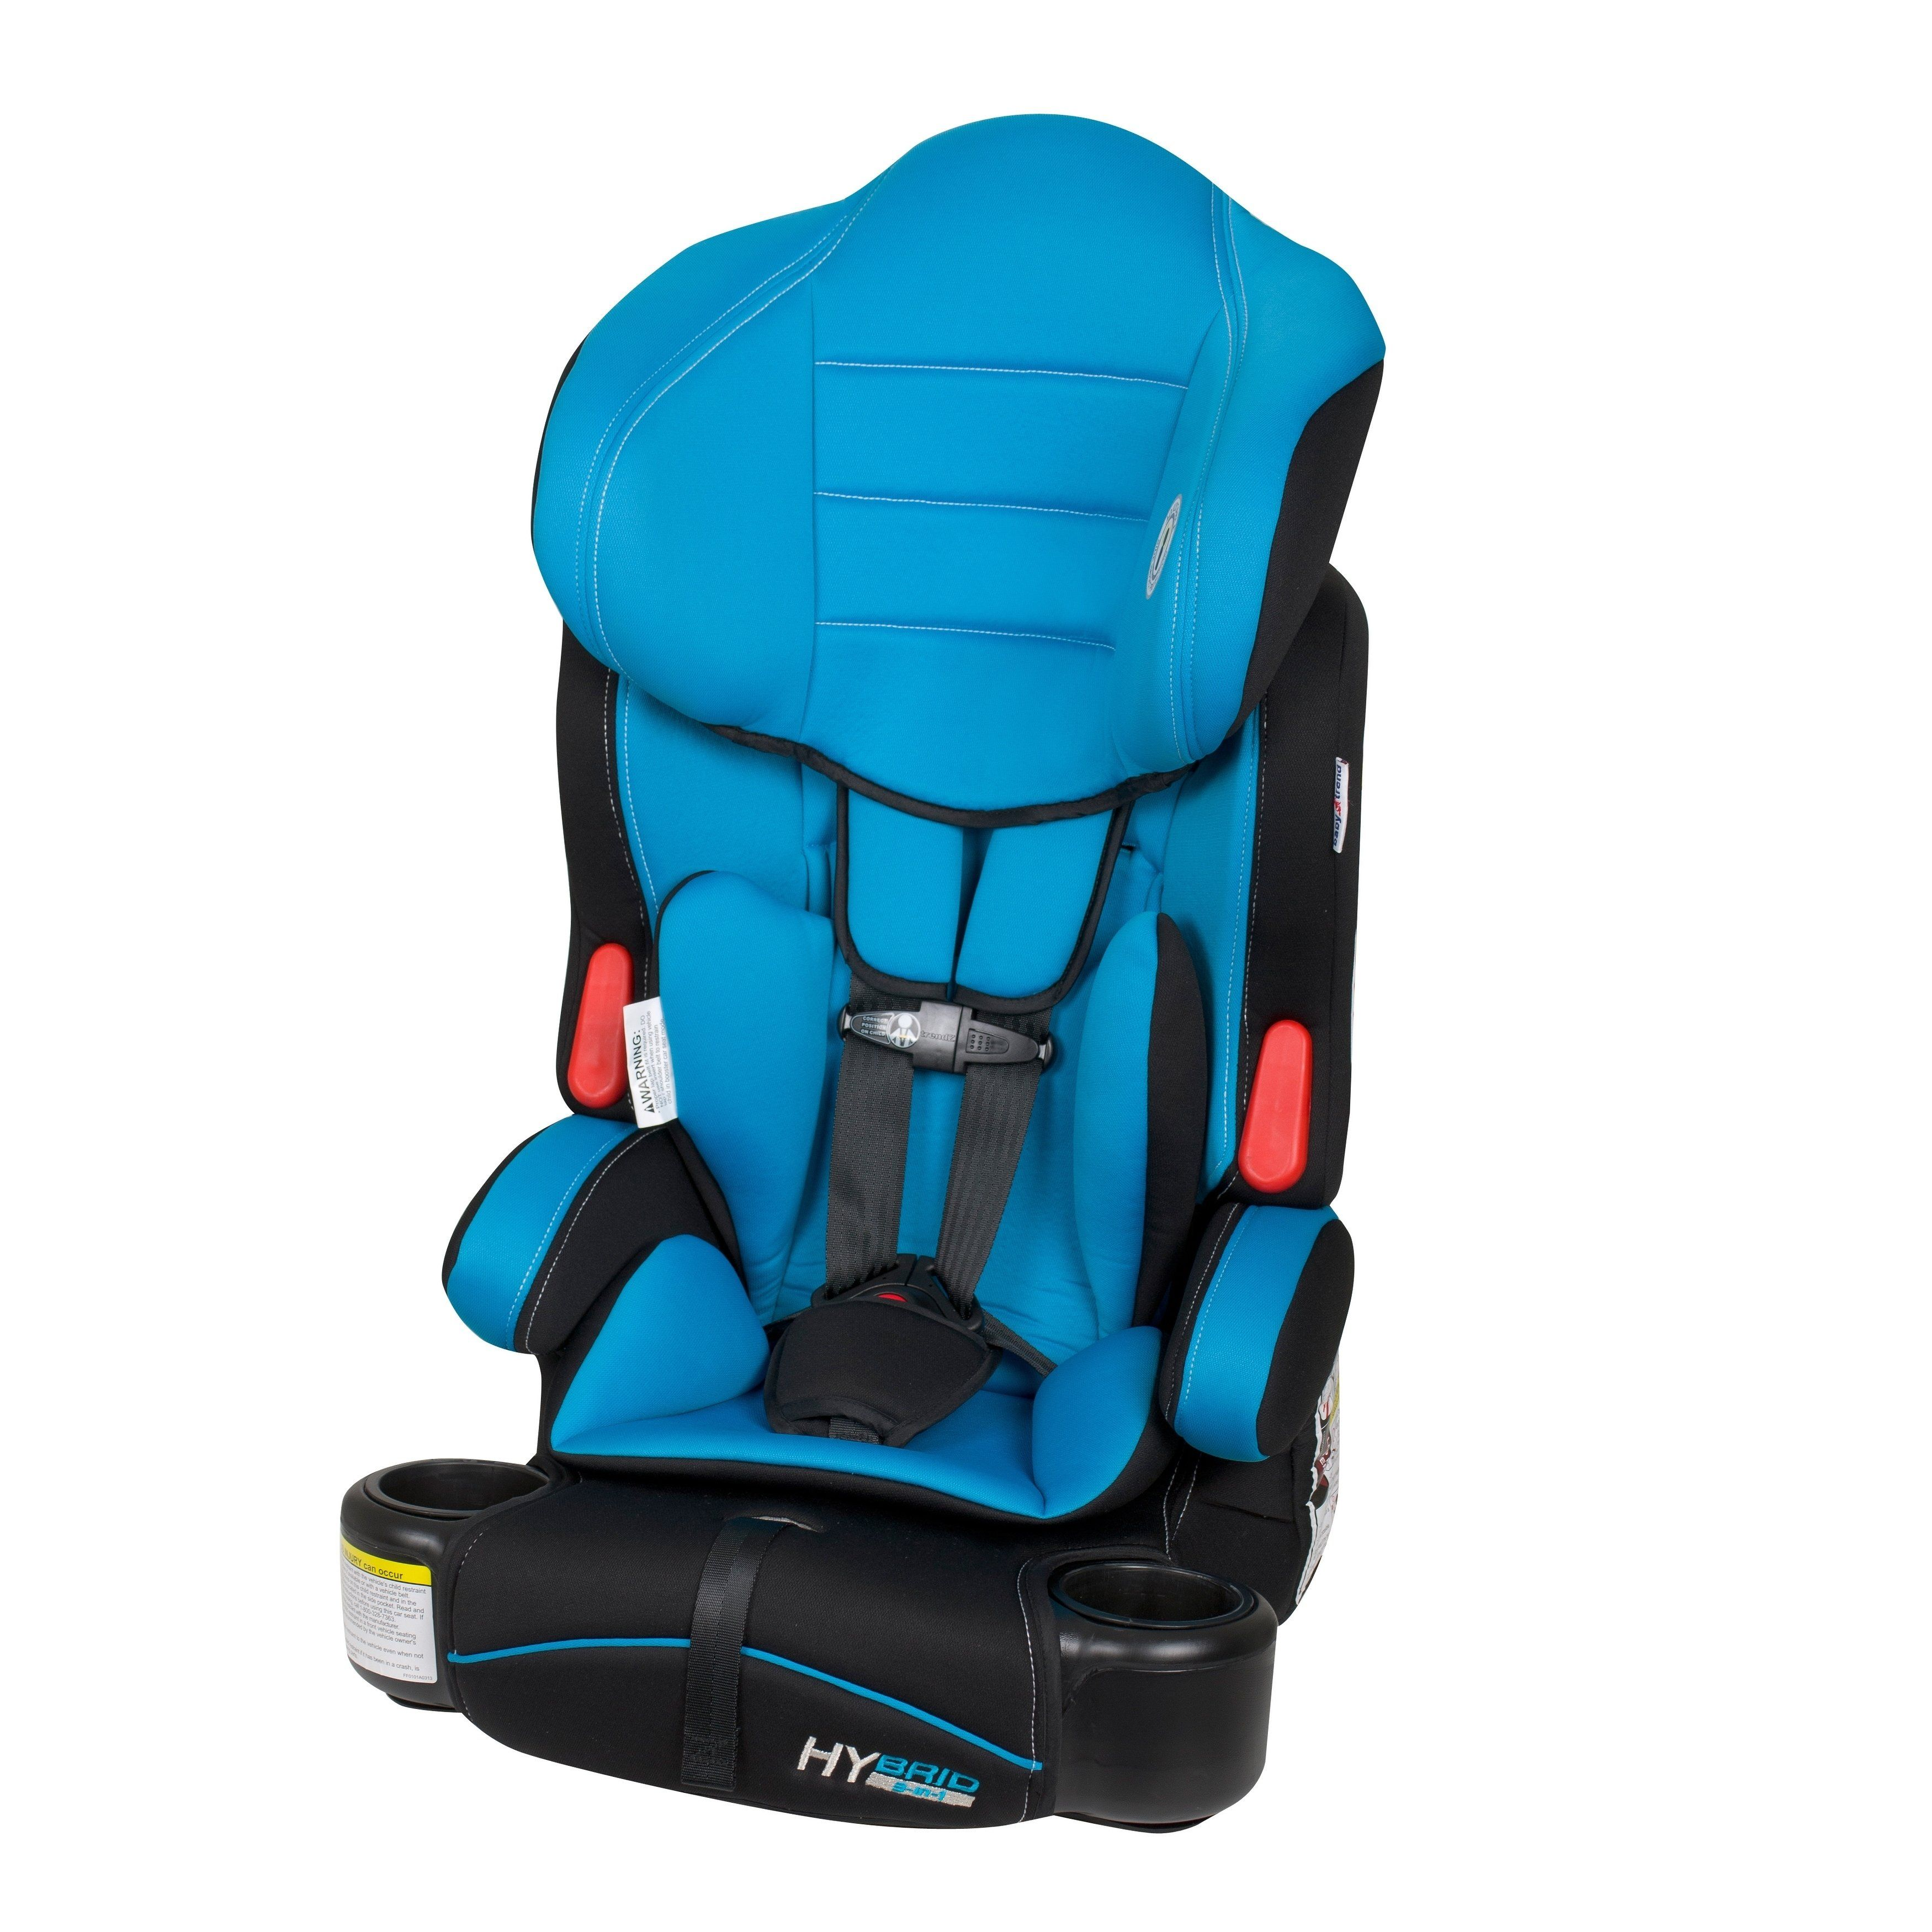 Baby Trend Hybrid 3in1 Car Seat, Blue Moon Baby car